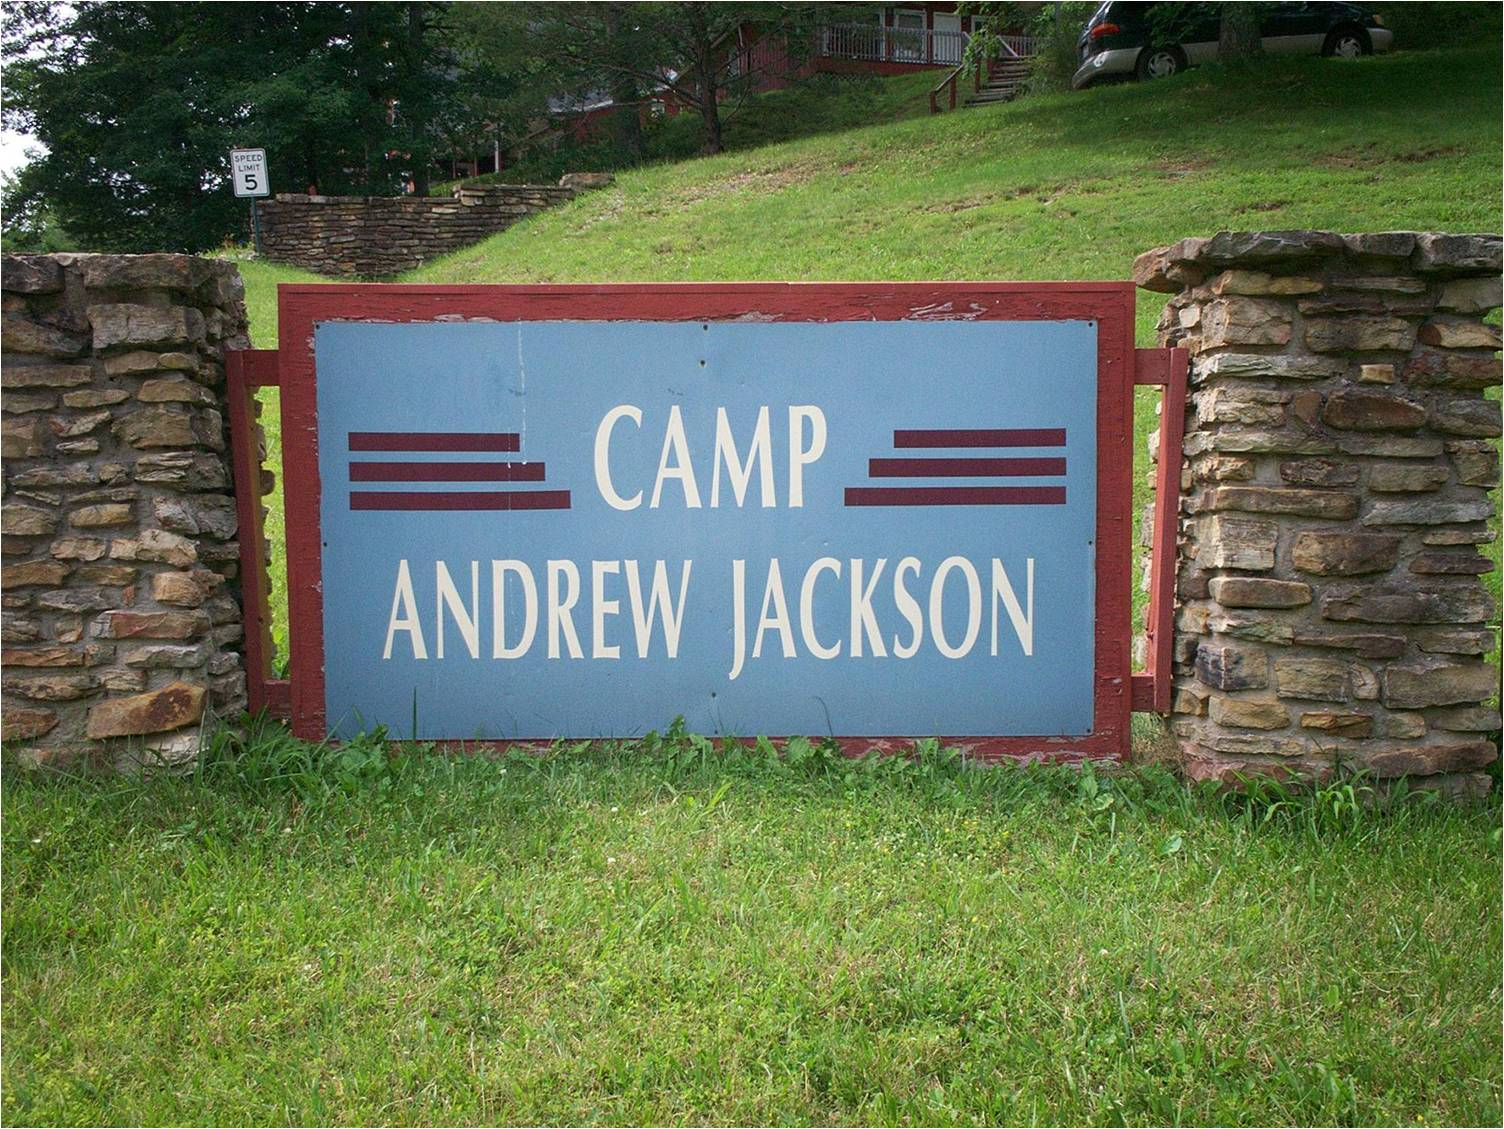 Camp Andrew Jackson is one of Christian Appalachian Project's summer programs available to Appalachian children.